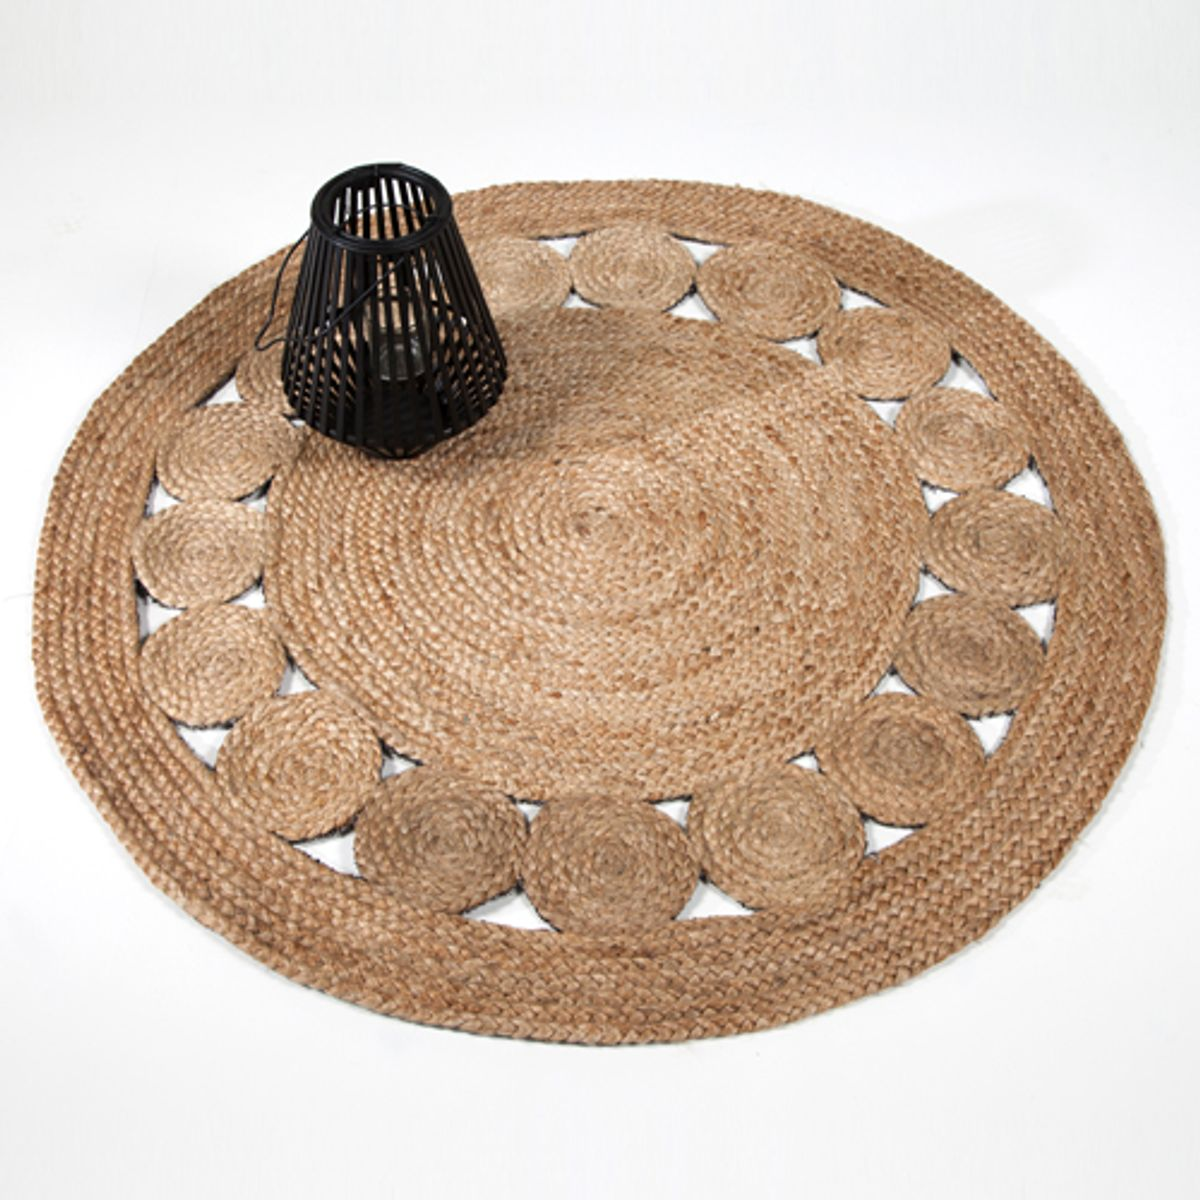 tapis rond esprit vintage en jute naturel tiss main 120. Black Bedroom Furniture Sets. Home Design Ideas